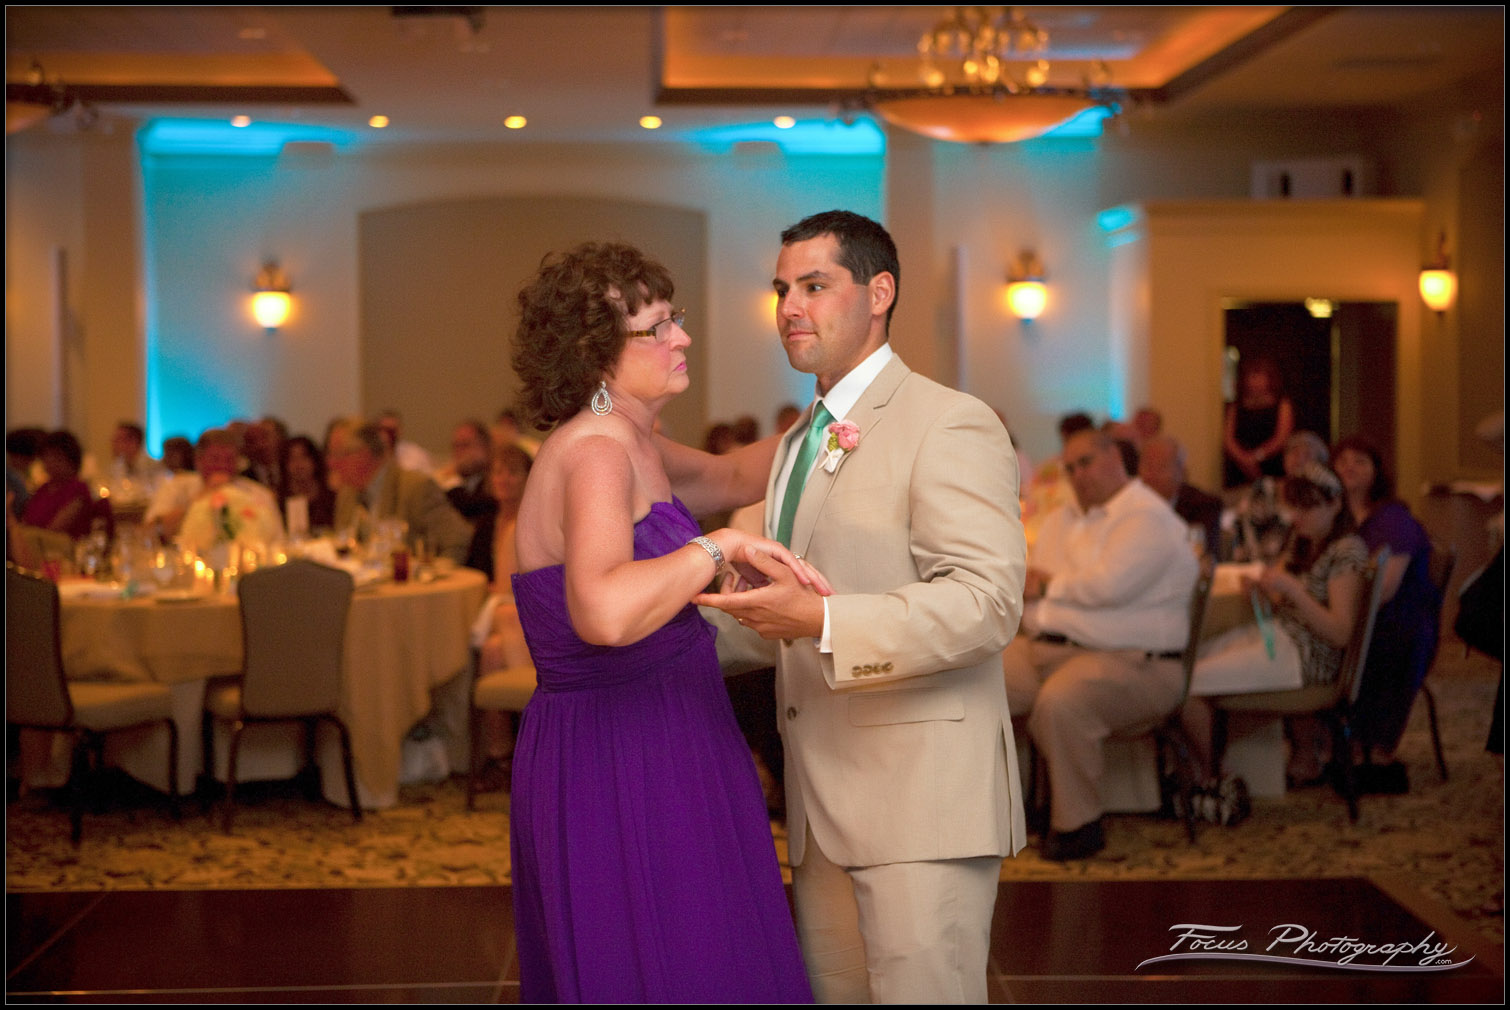 the groom and his mother dance